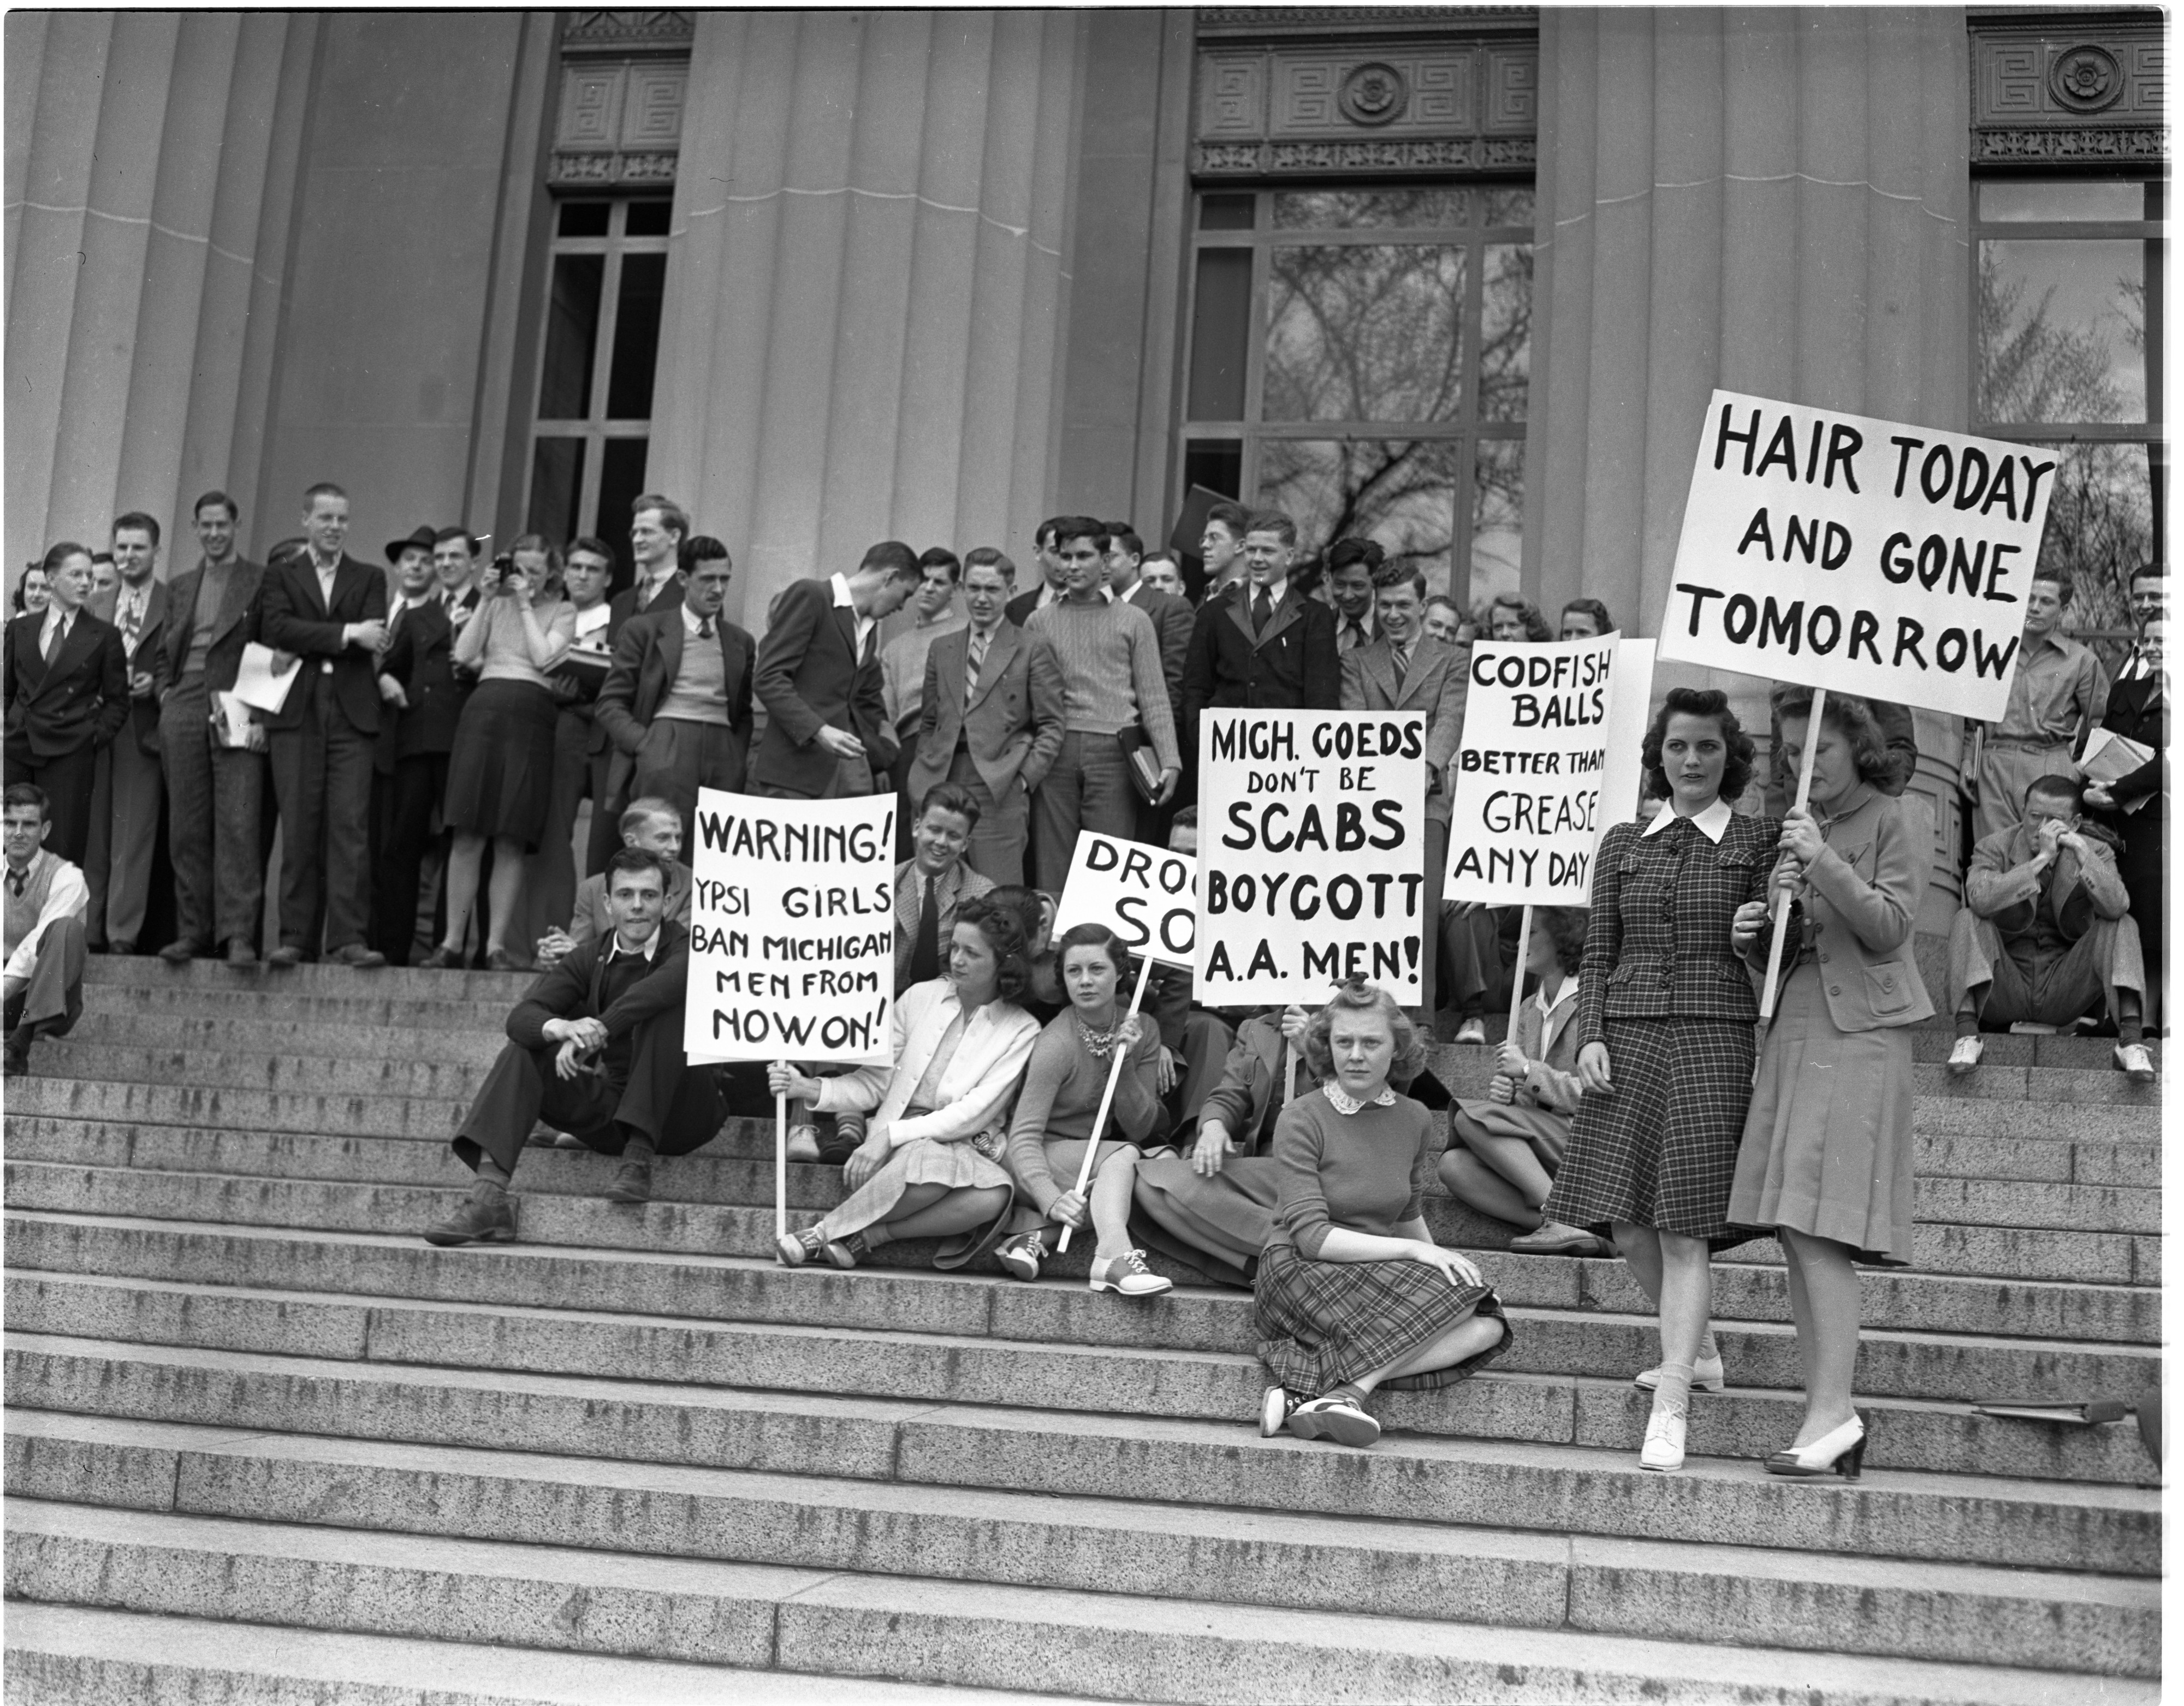 Ypsilanti women from Michigan State Normal College in Ypsilanti picket U-M men in front of Angell Hall, May 1940 image